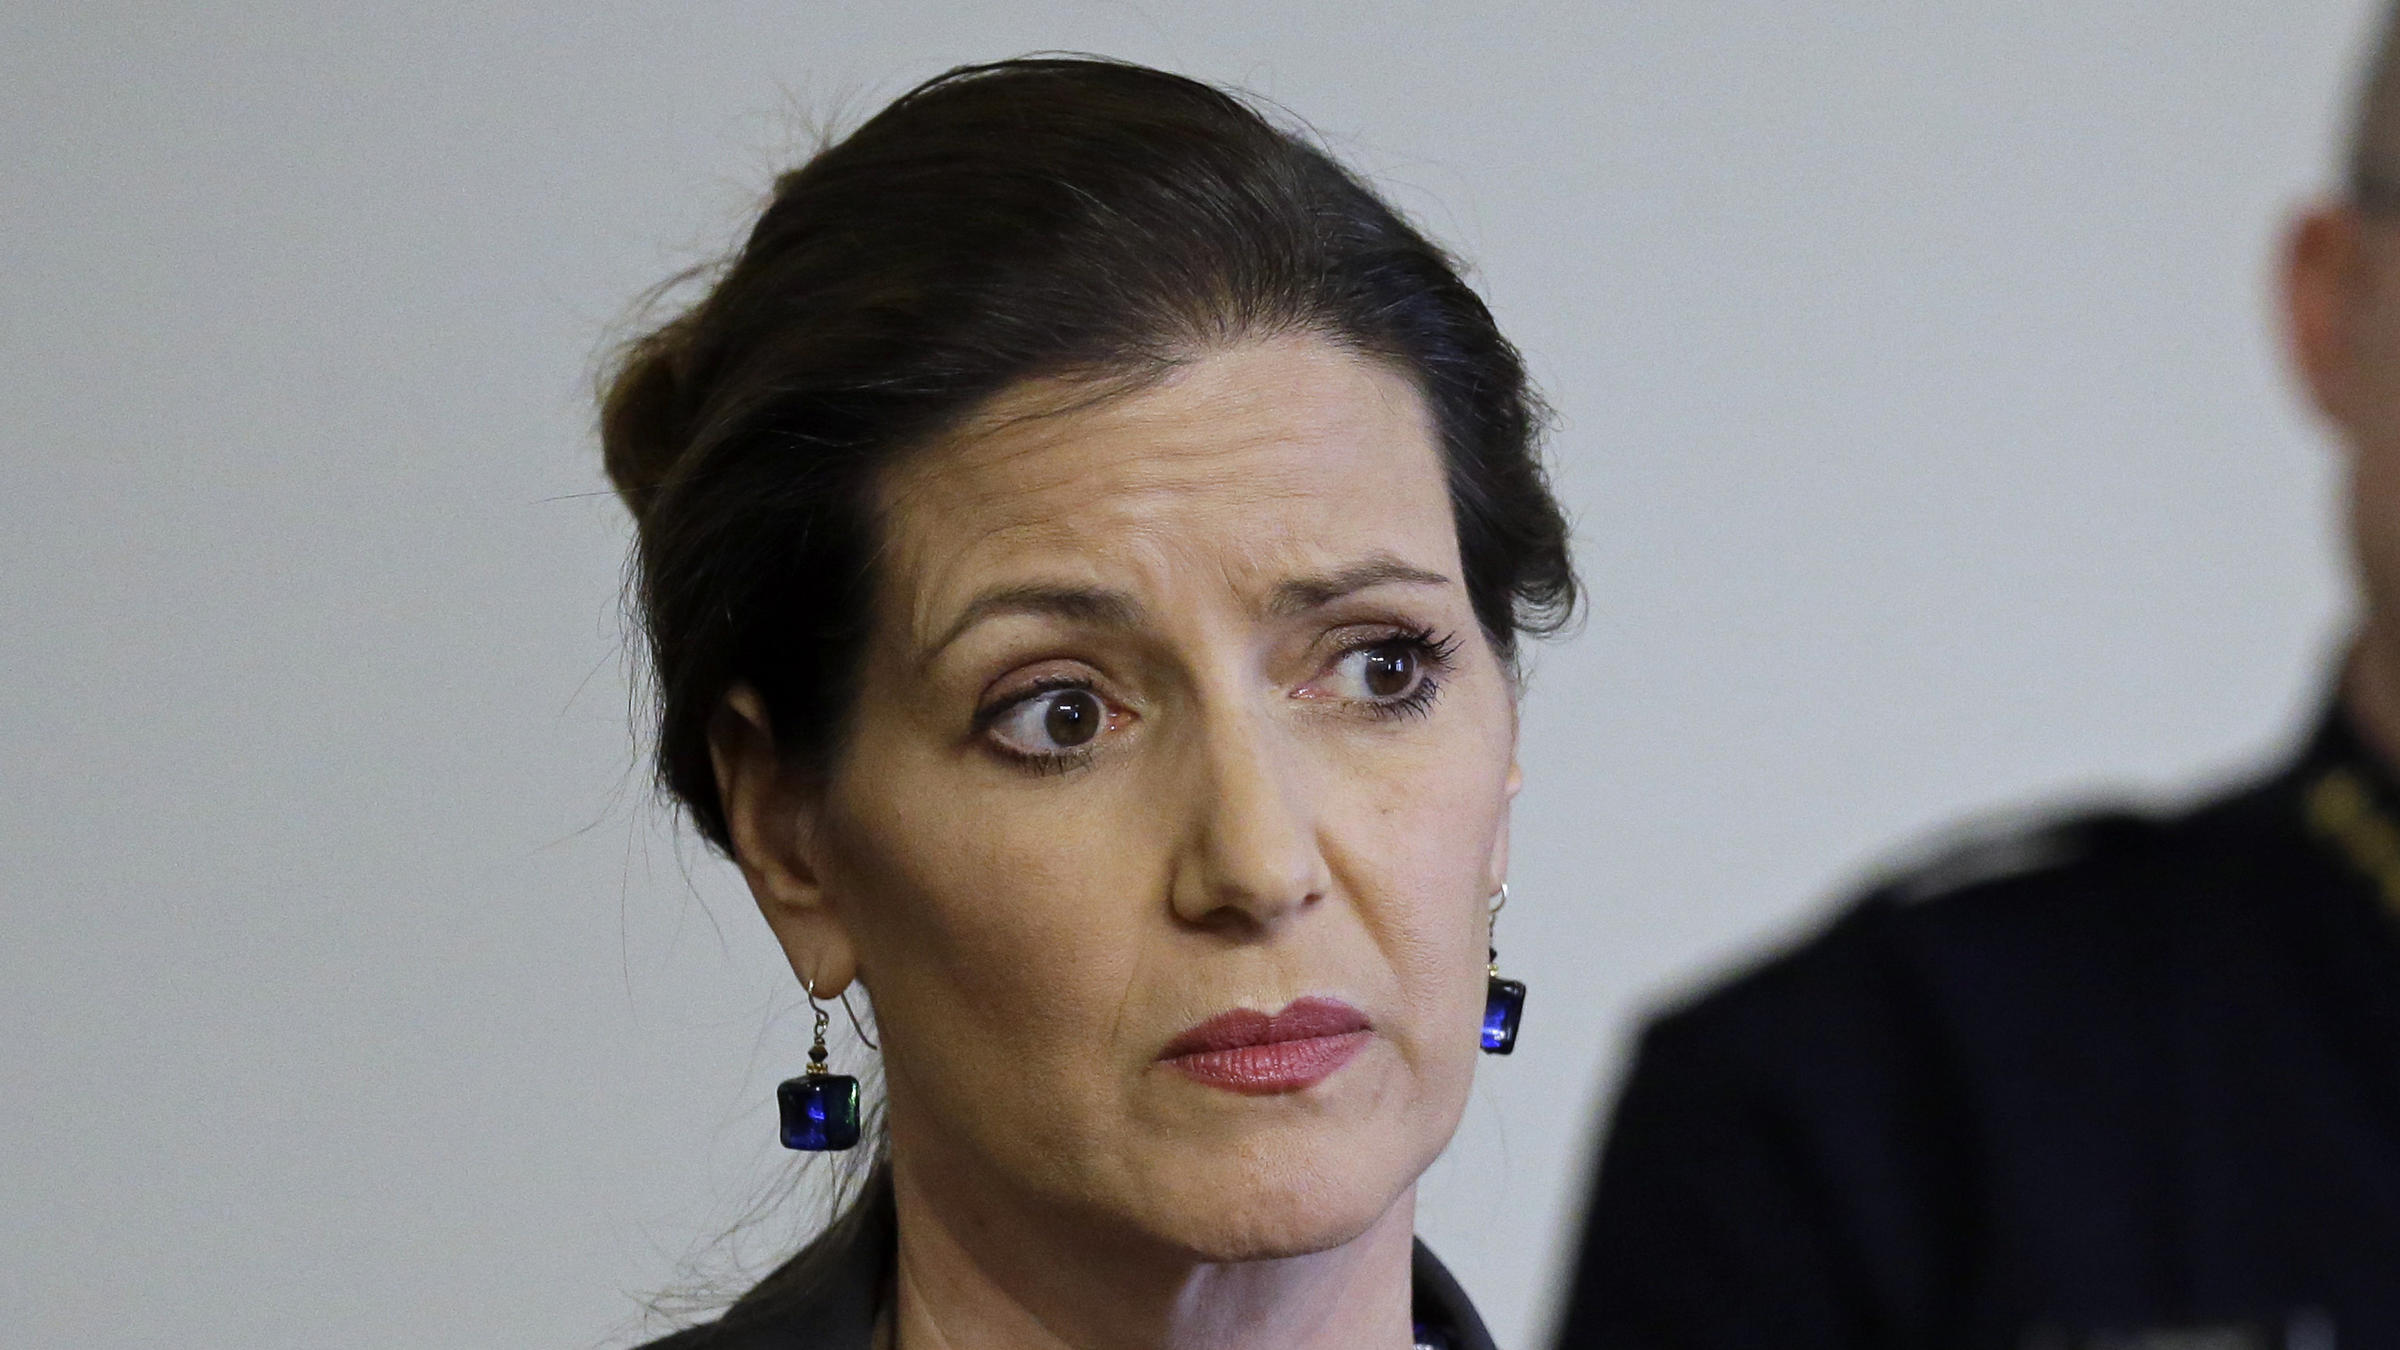 CALIFORNIA CHAOS: DOJ to INVESTIGATE Oakland Mayor After ICE TIP-OFF